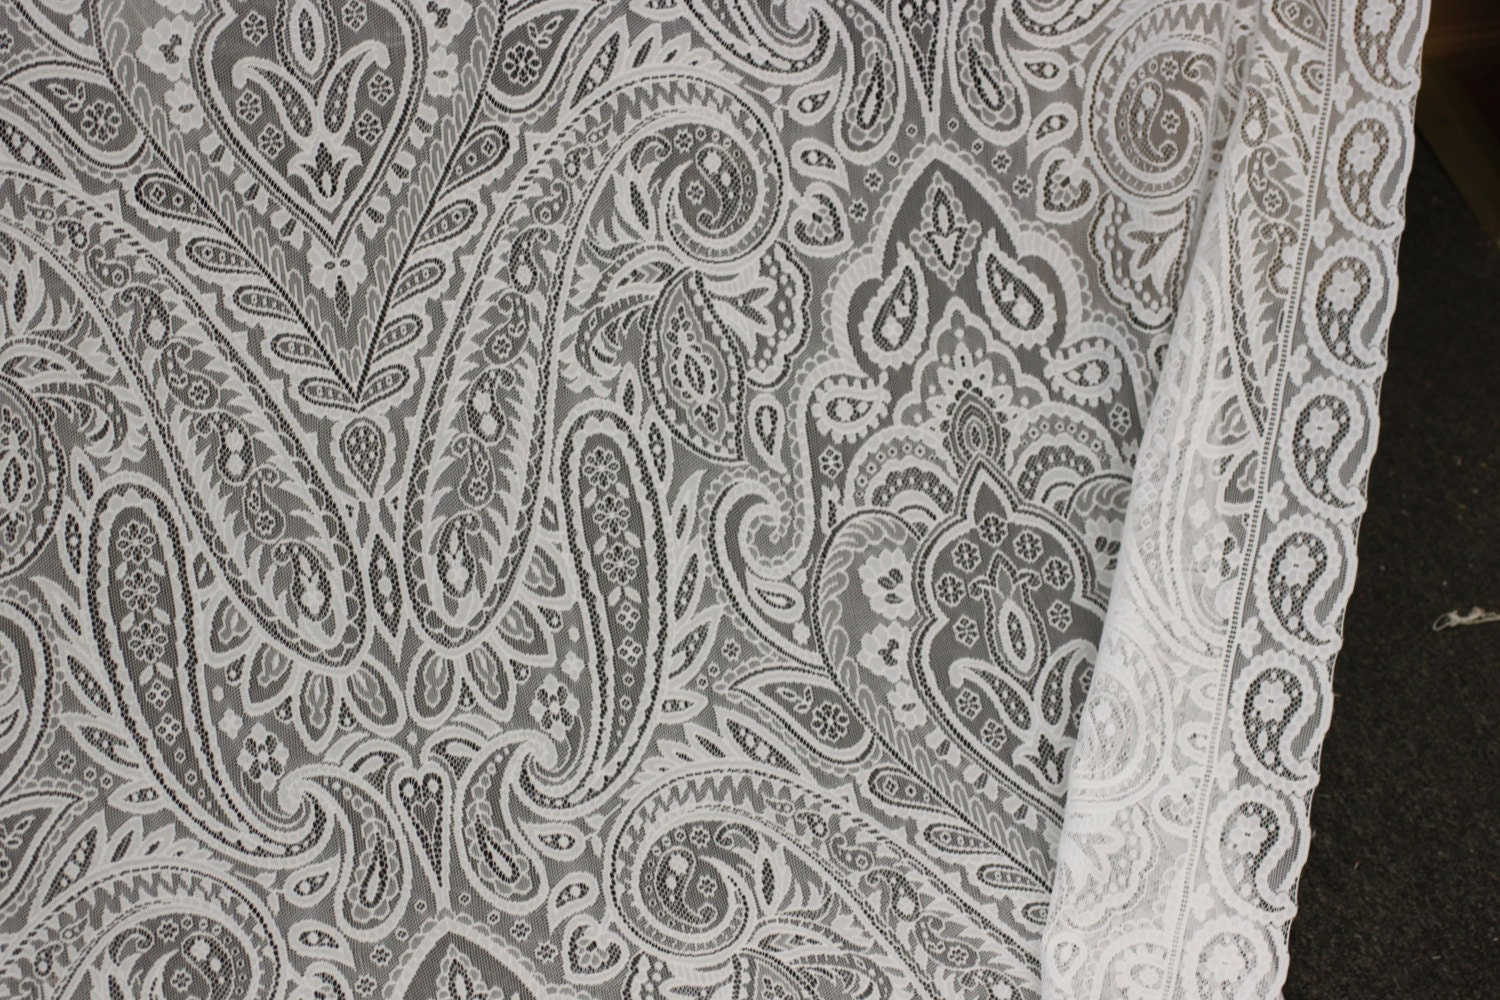 Lace 19 century lace ivory or white drapery fabric for Lace home decor